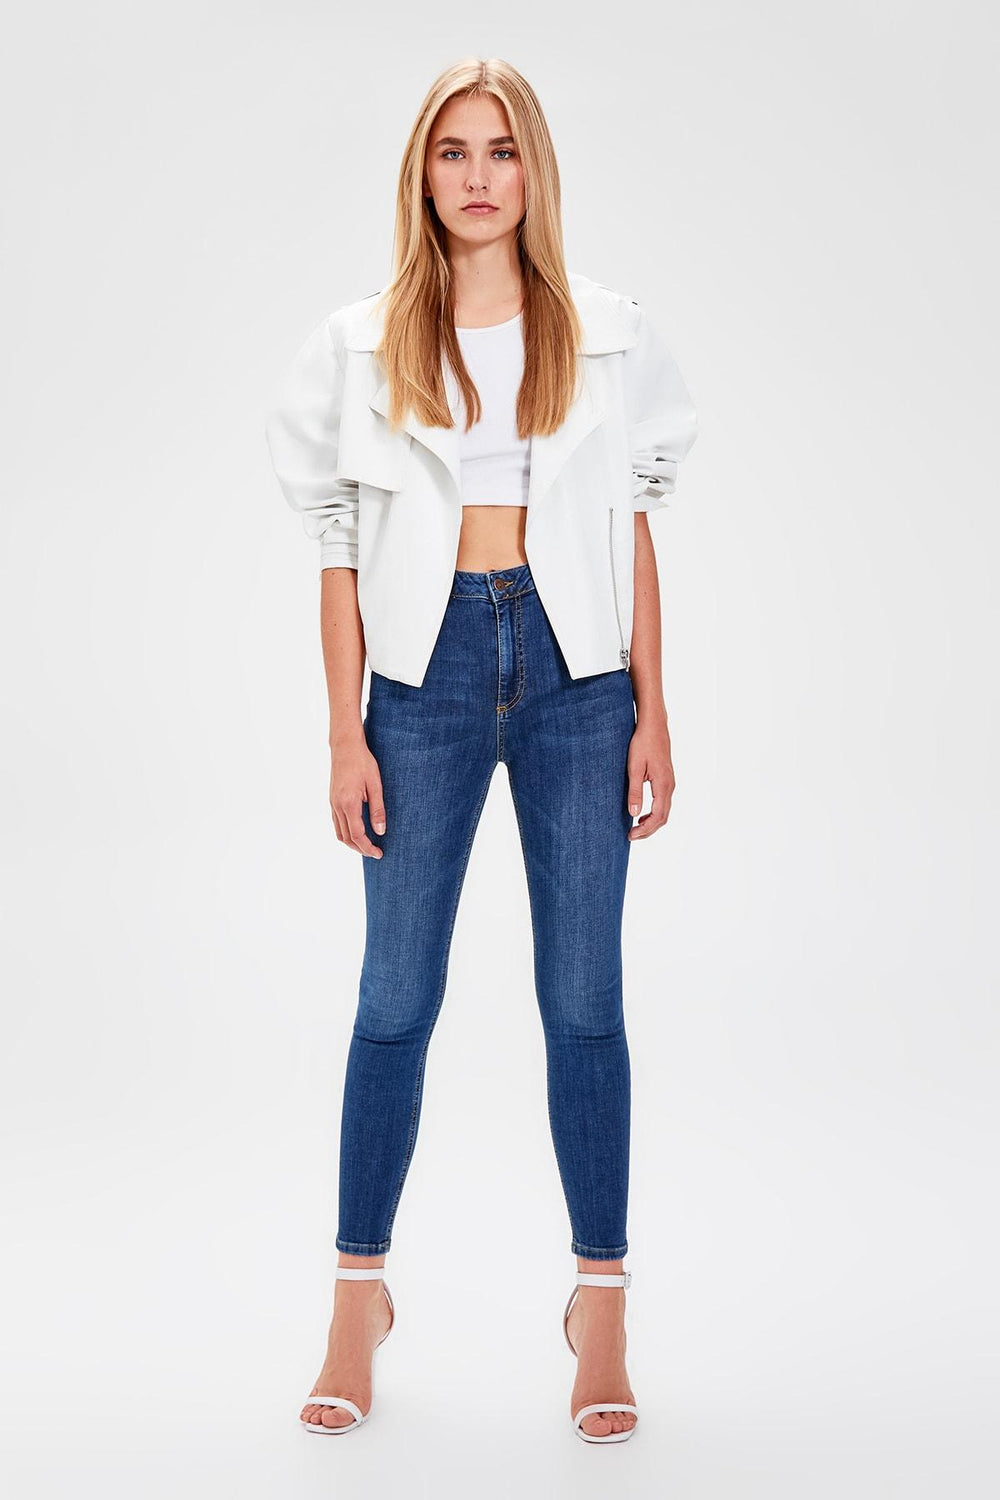 Blue High Waist Skinny Jeans - Top Maxy